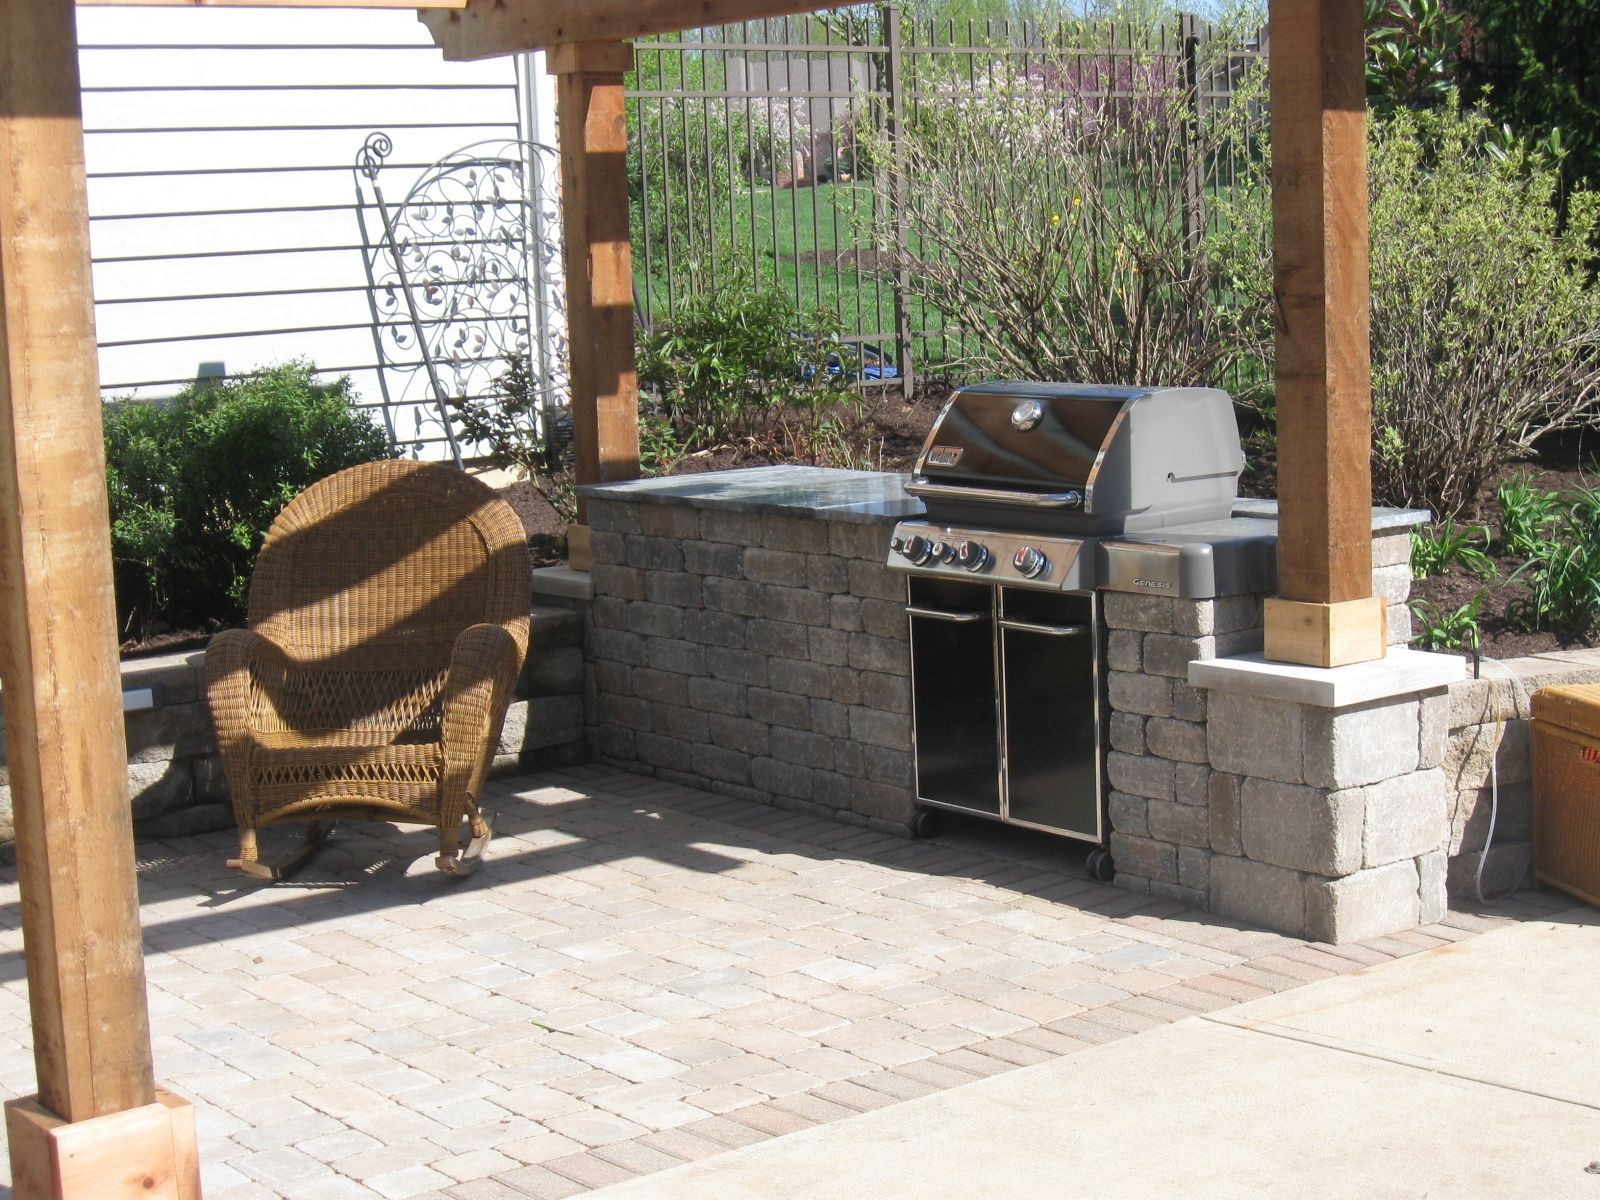 weber outdoor kitchen inspiration and design ideas for dream house weber outdoor kitchen on outdoor kitchen natural id=62295